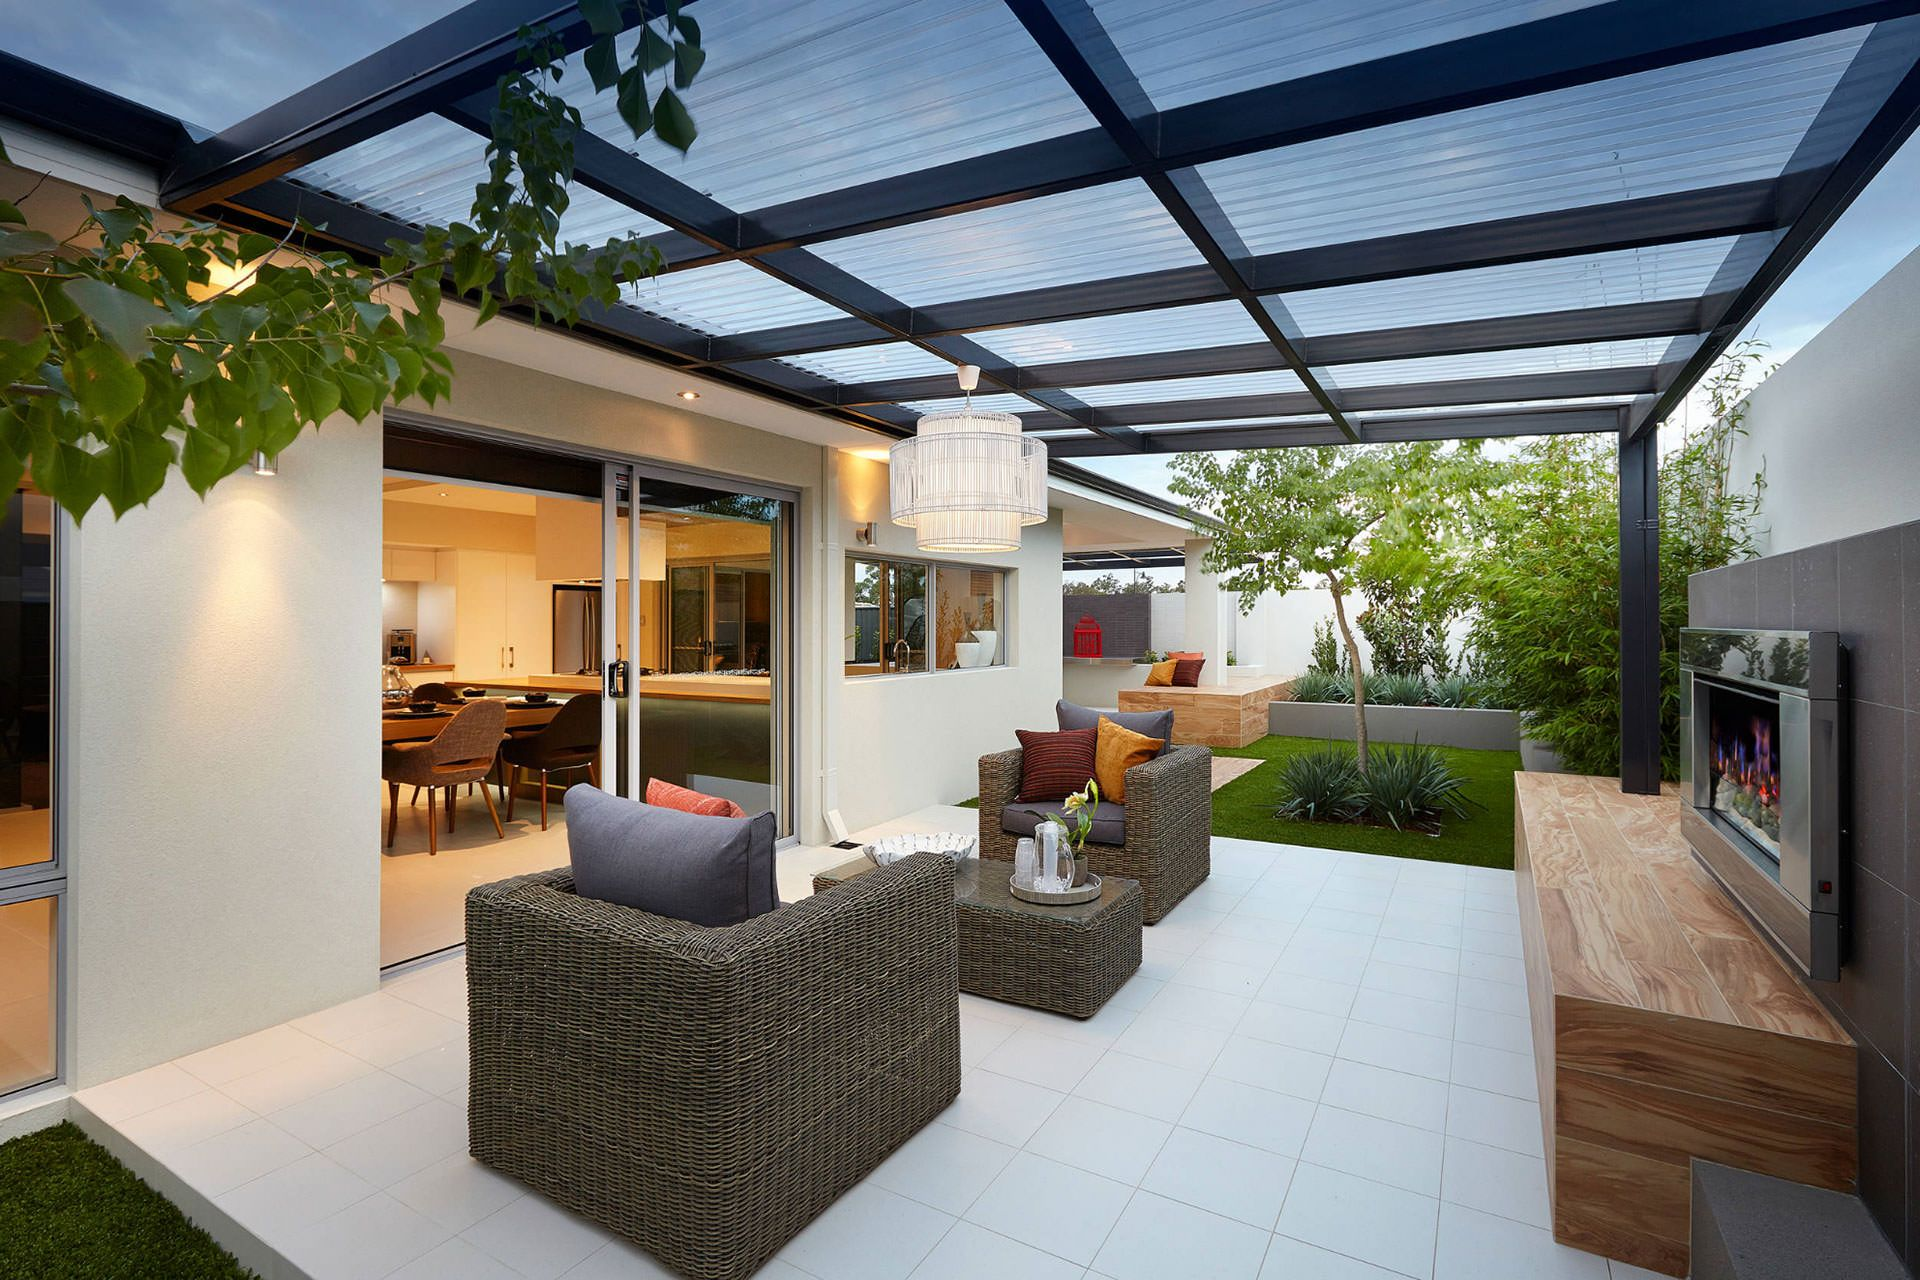 Patio Roof With Polycarbonate Panels